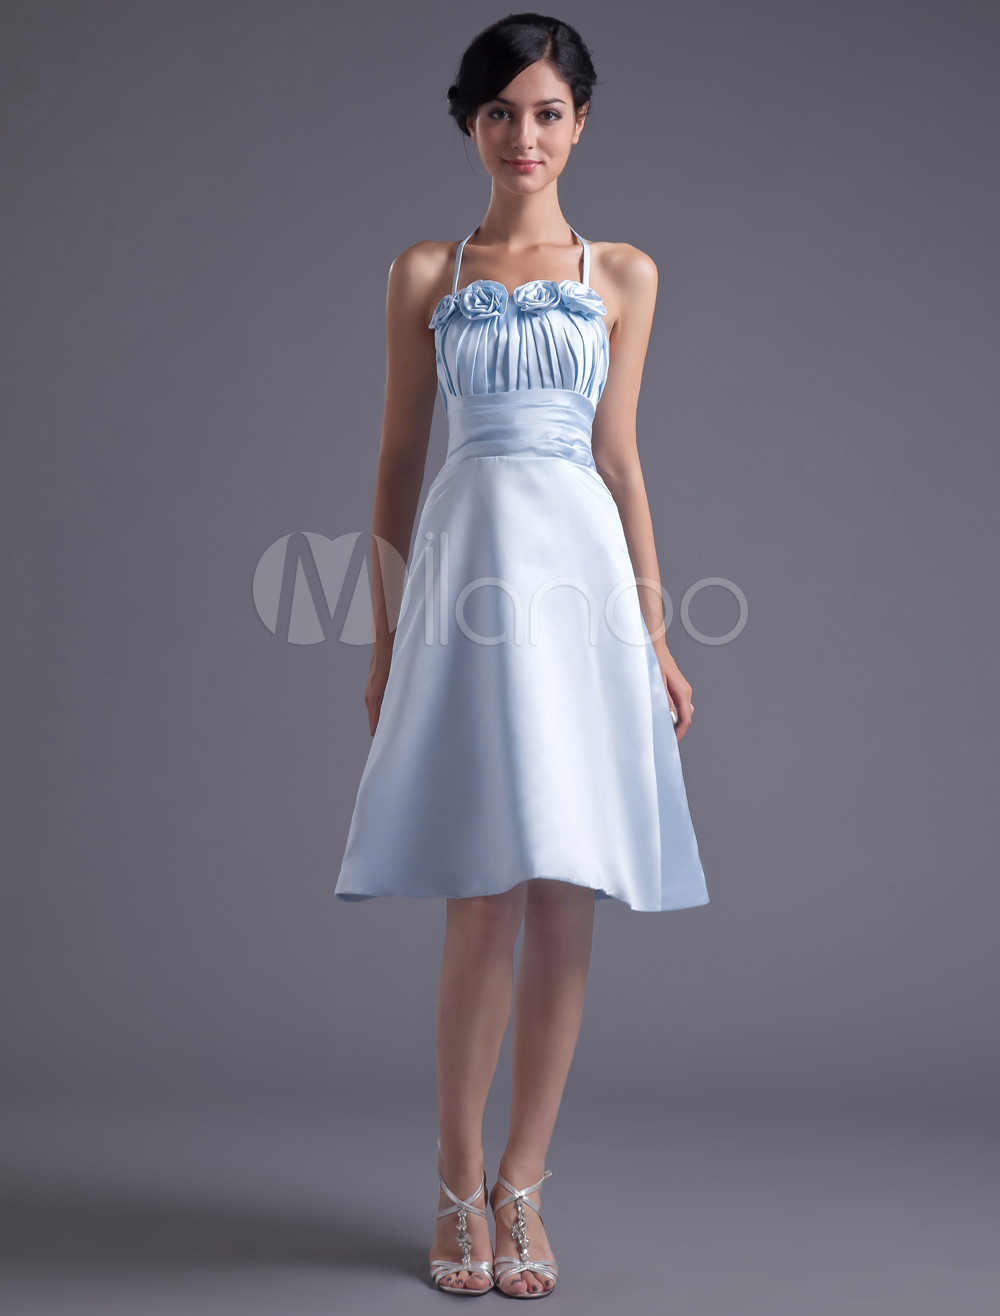 A-line Light Sky Blue Satin Floral Halter Knee-Length Fashion Bridesmaid Dress